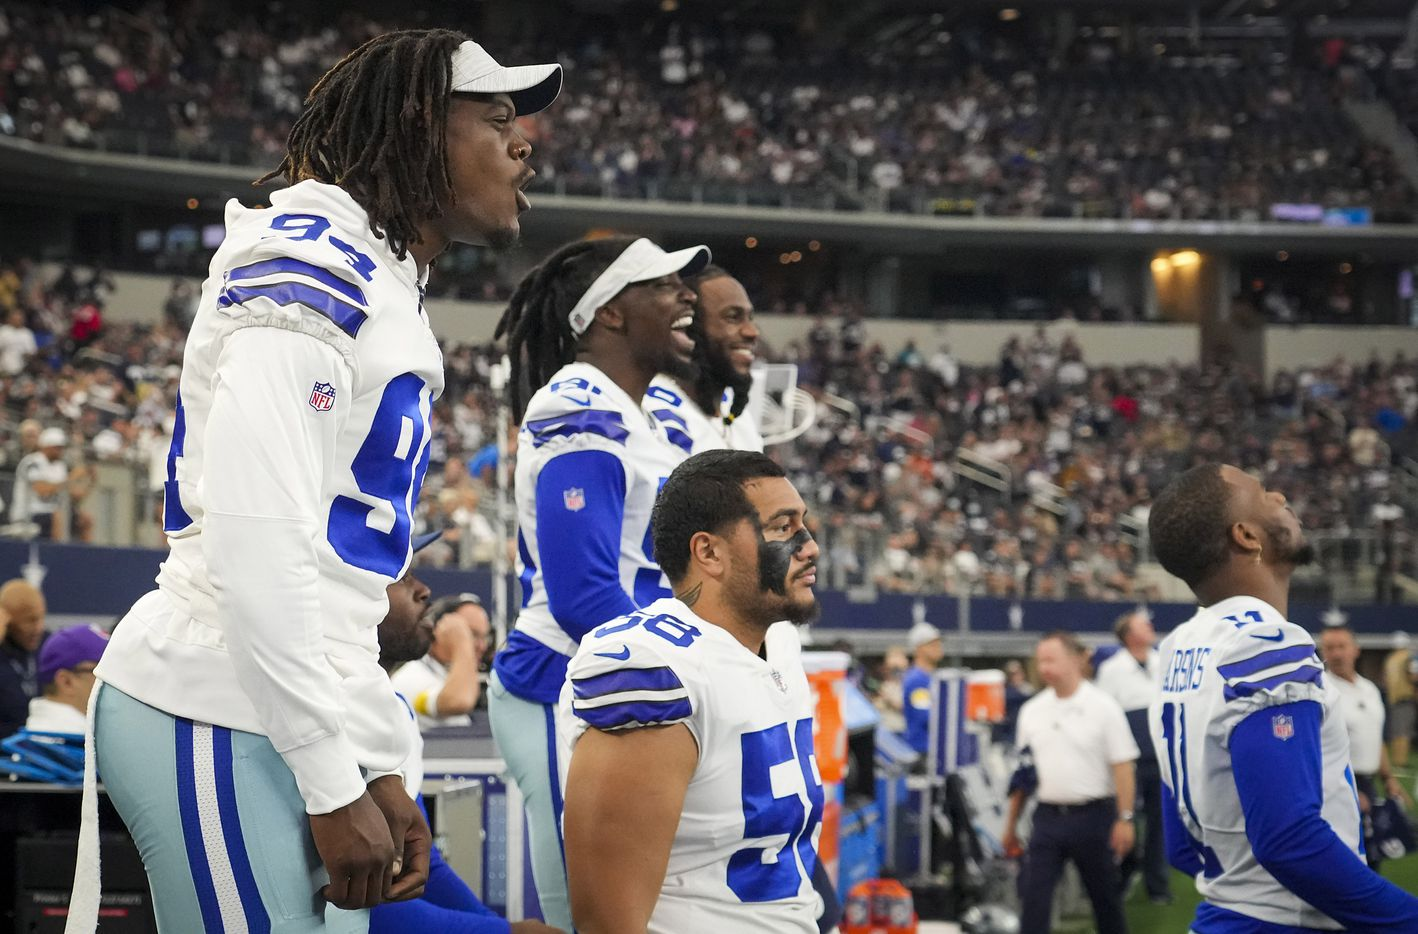 Dallas Cowboys defensive end Randy Gregory (94) cheers from the bench during the first half of a preseason NFL football game against the Jacksonville Jaguars at AT&T Stadium on Sunday, Aug. 29, 2021, in Arlington. (Smiley N. Pool/The Dallas Morning News)